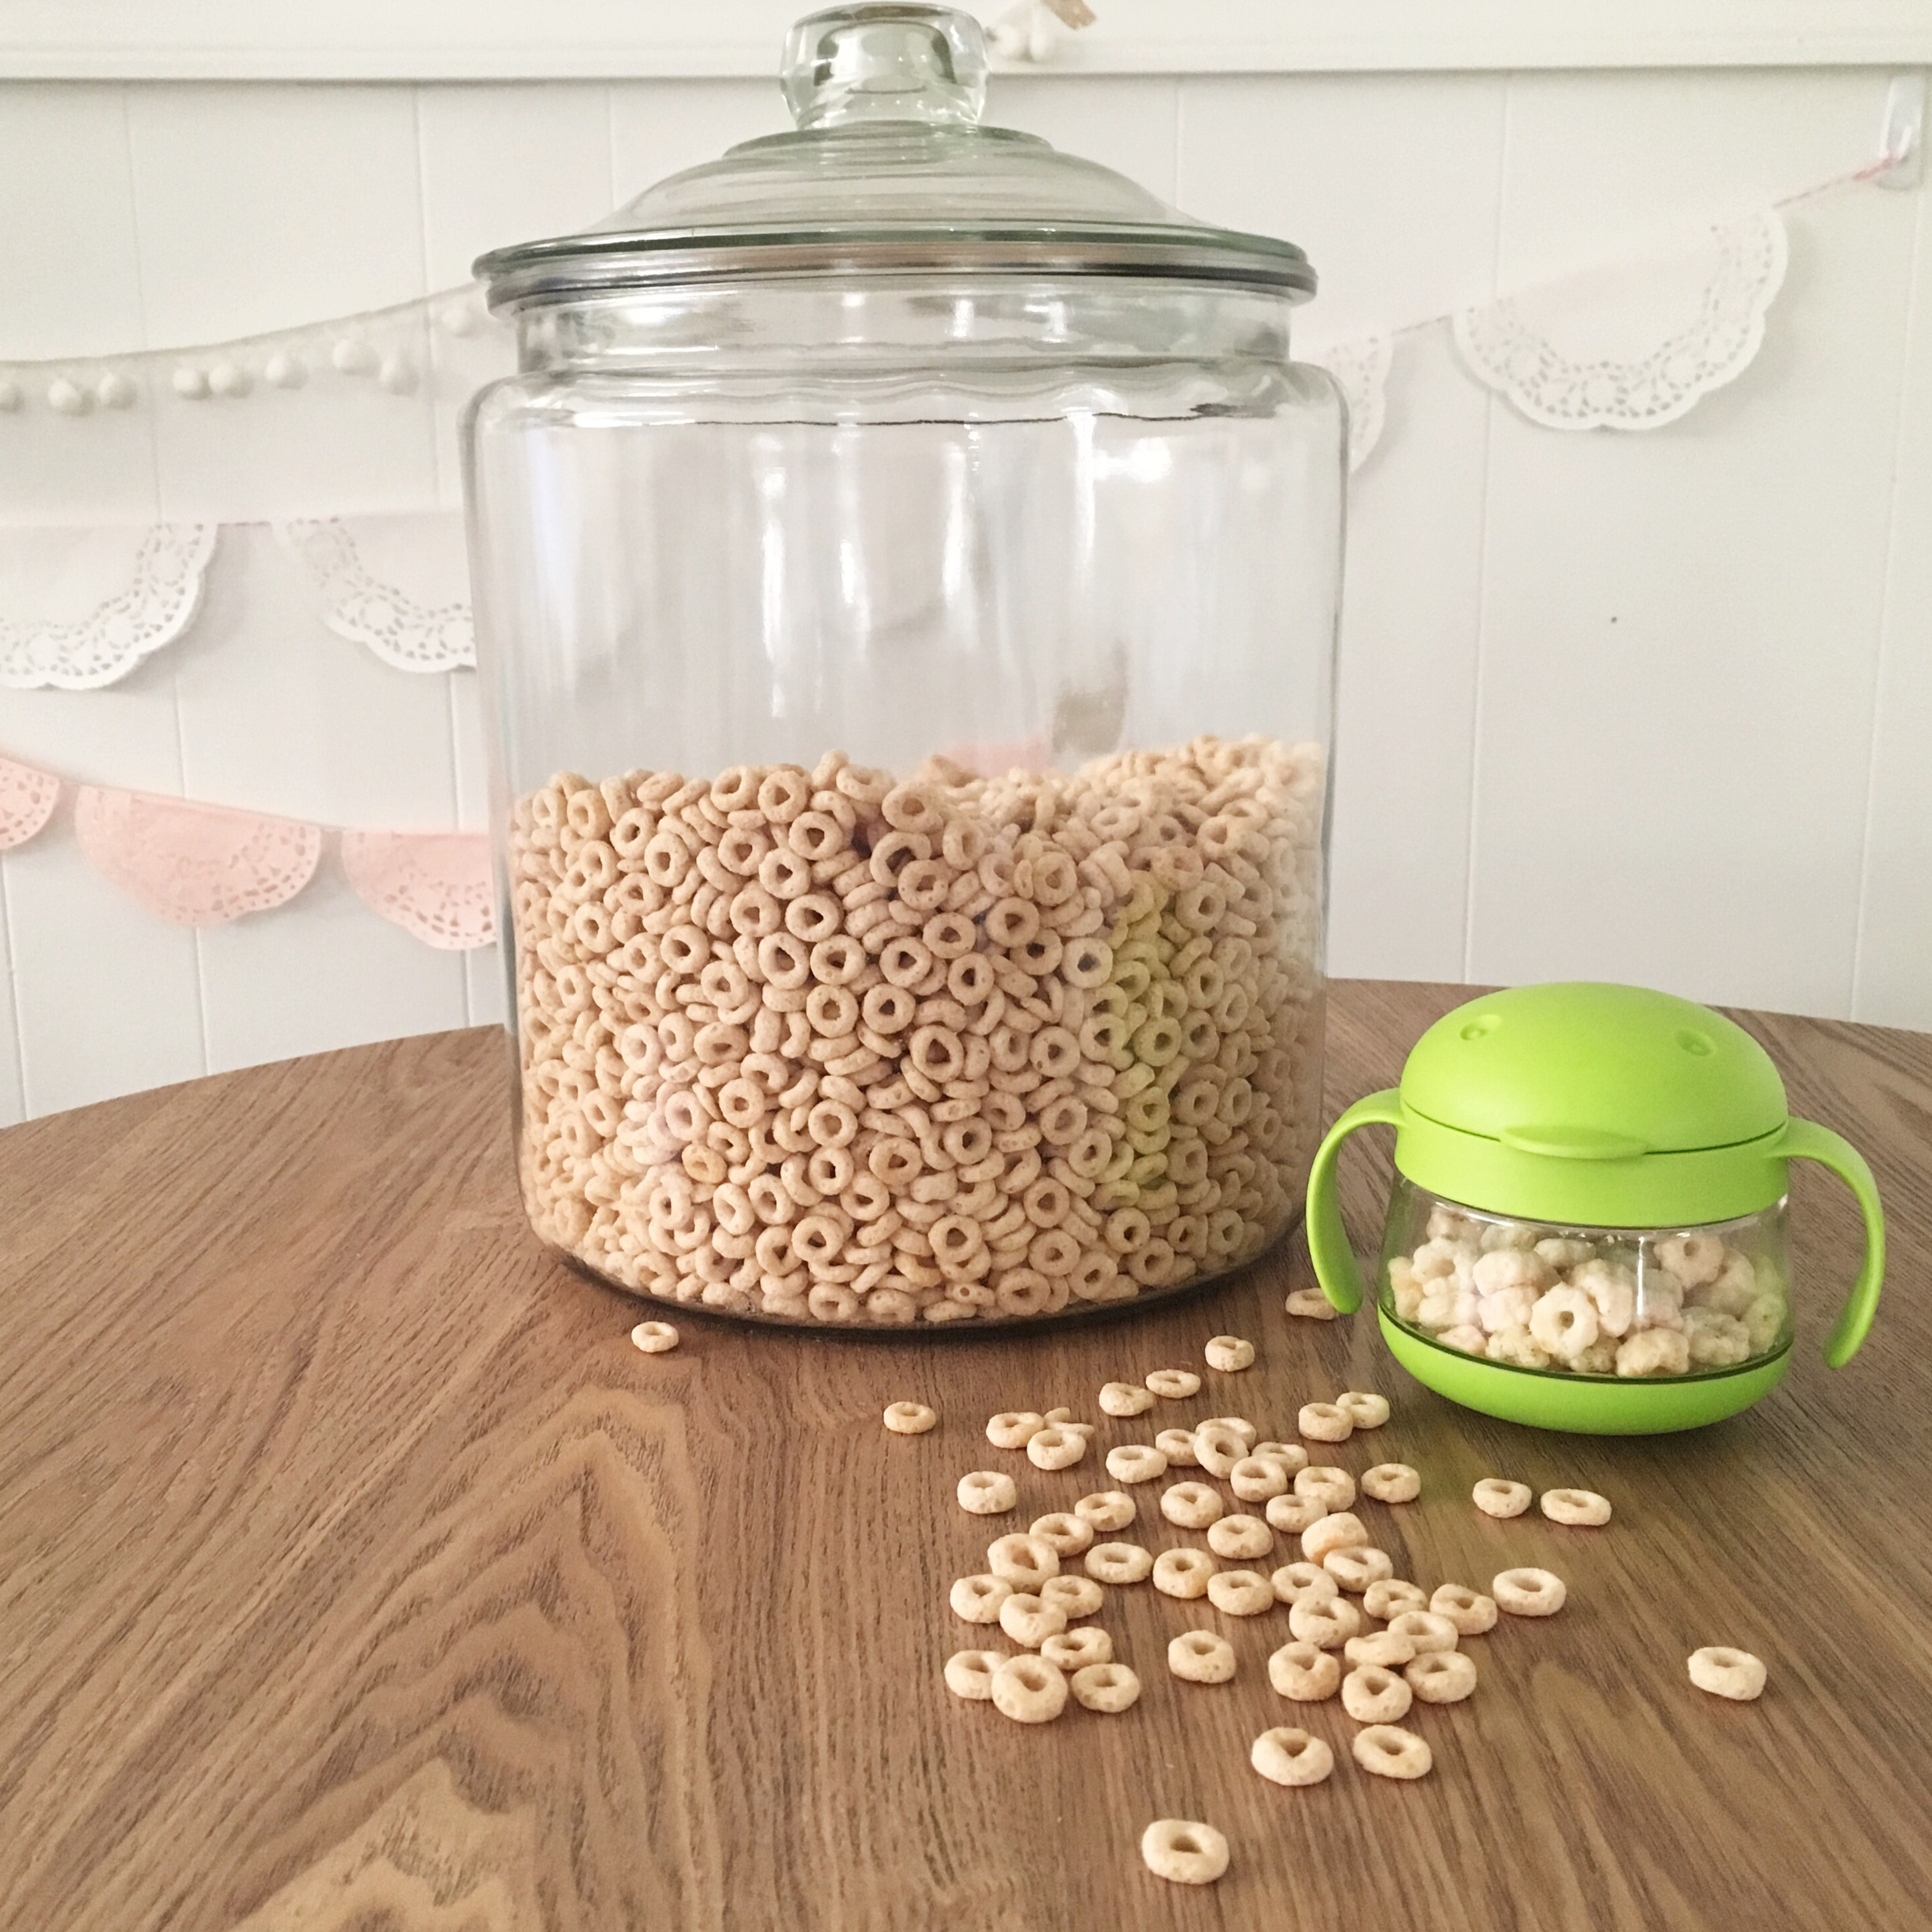 Toddler Snack Container from Ubbi